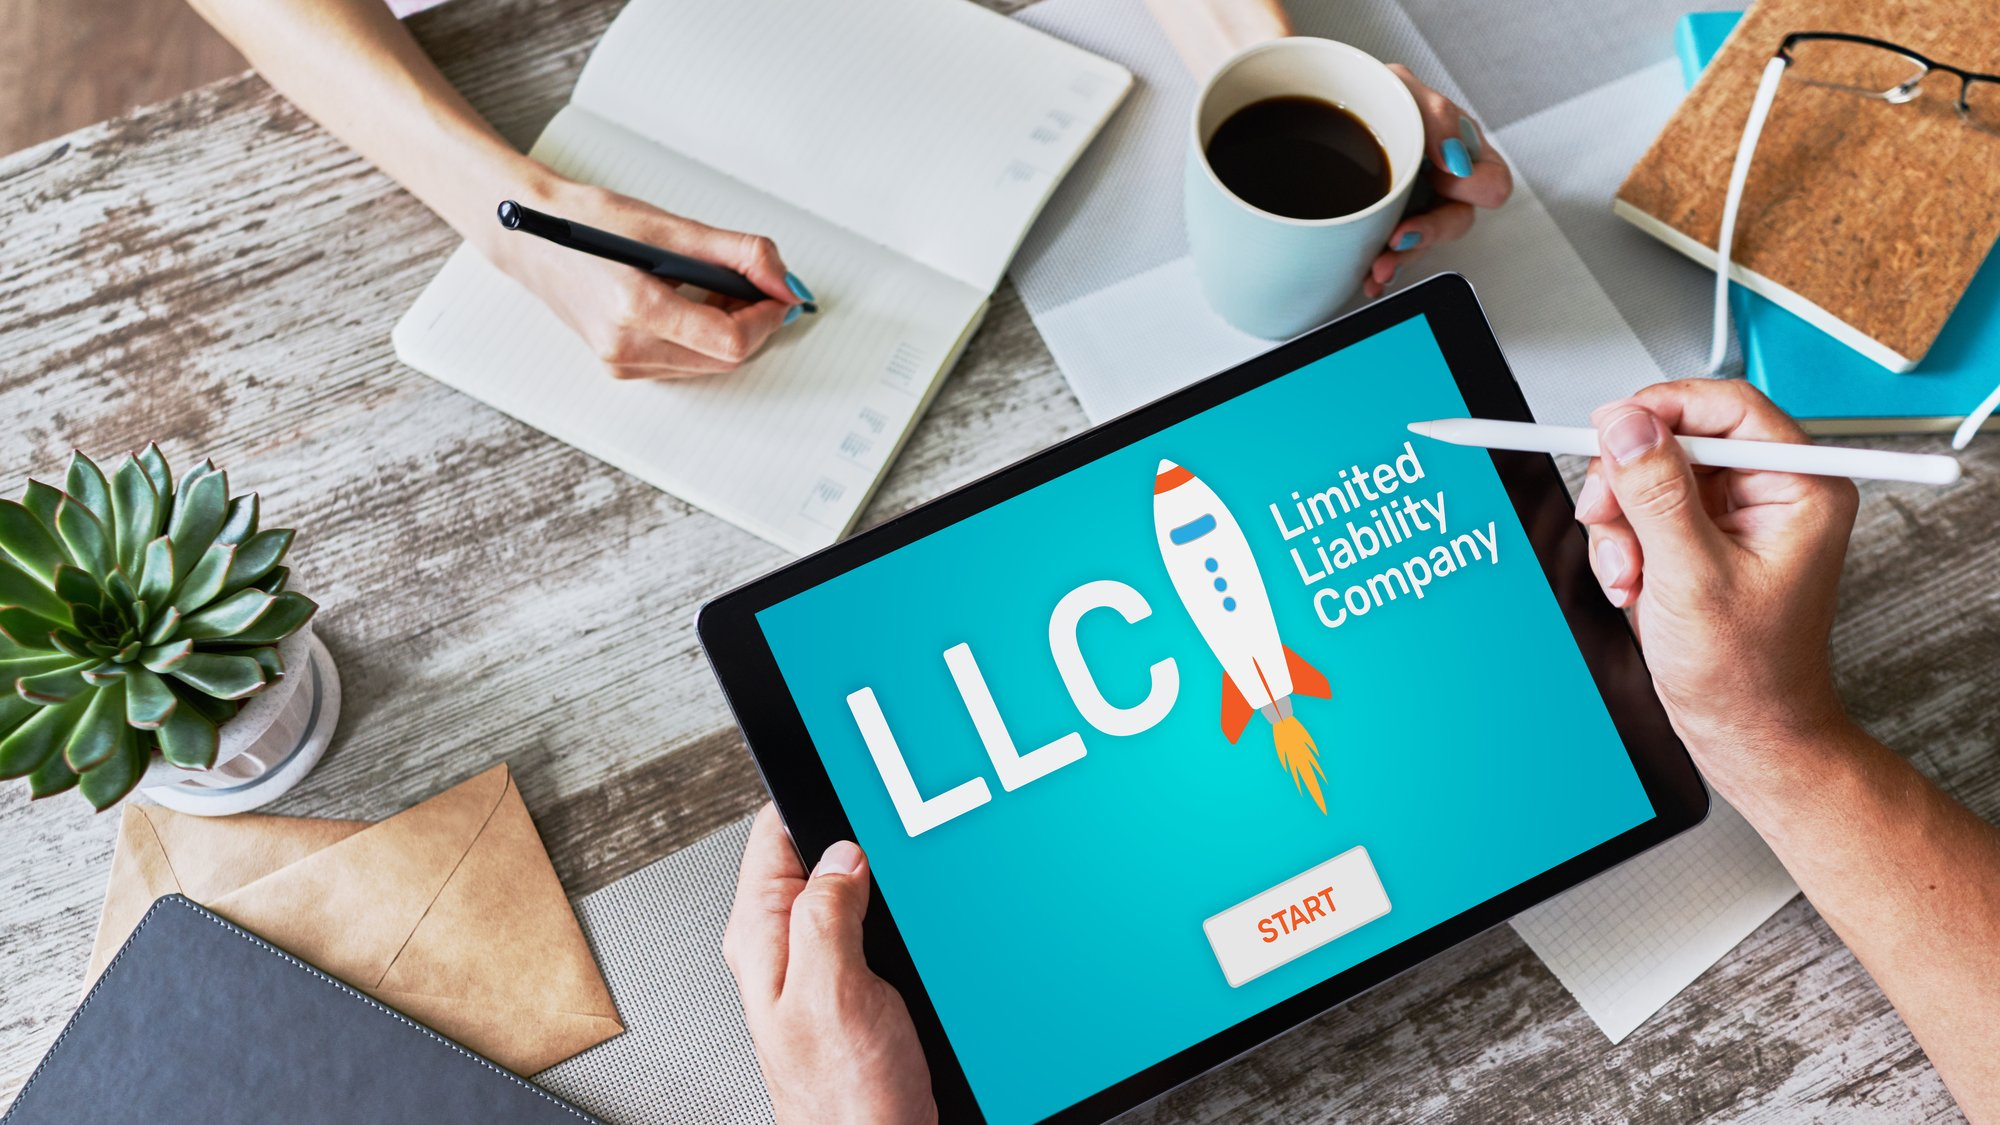 LLC Limited Liability Company Business strategy and technology